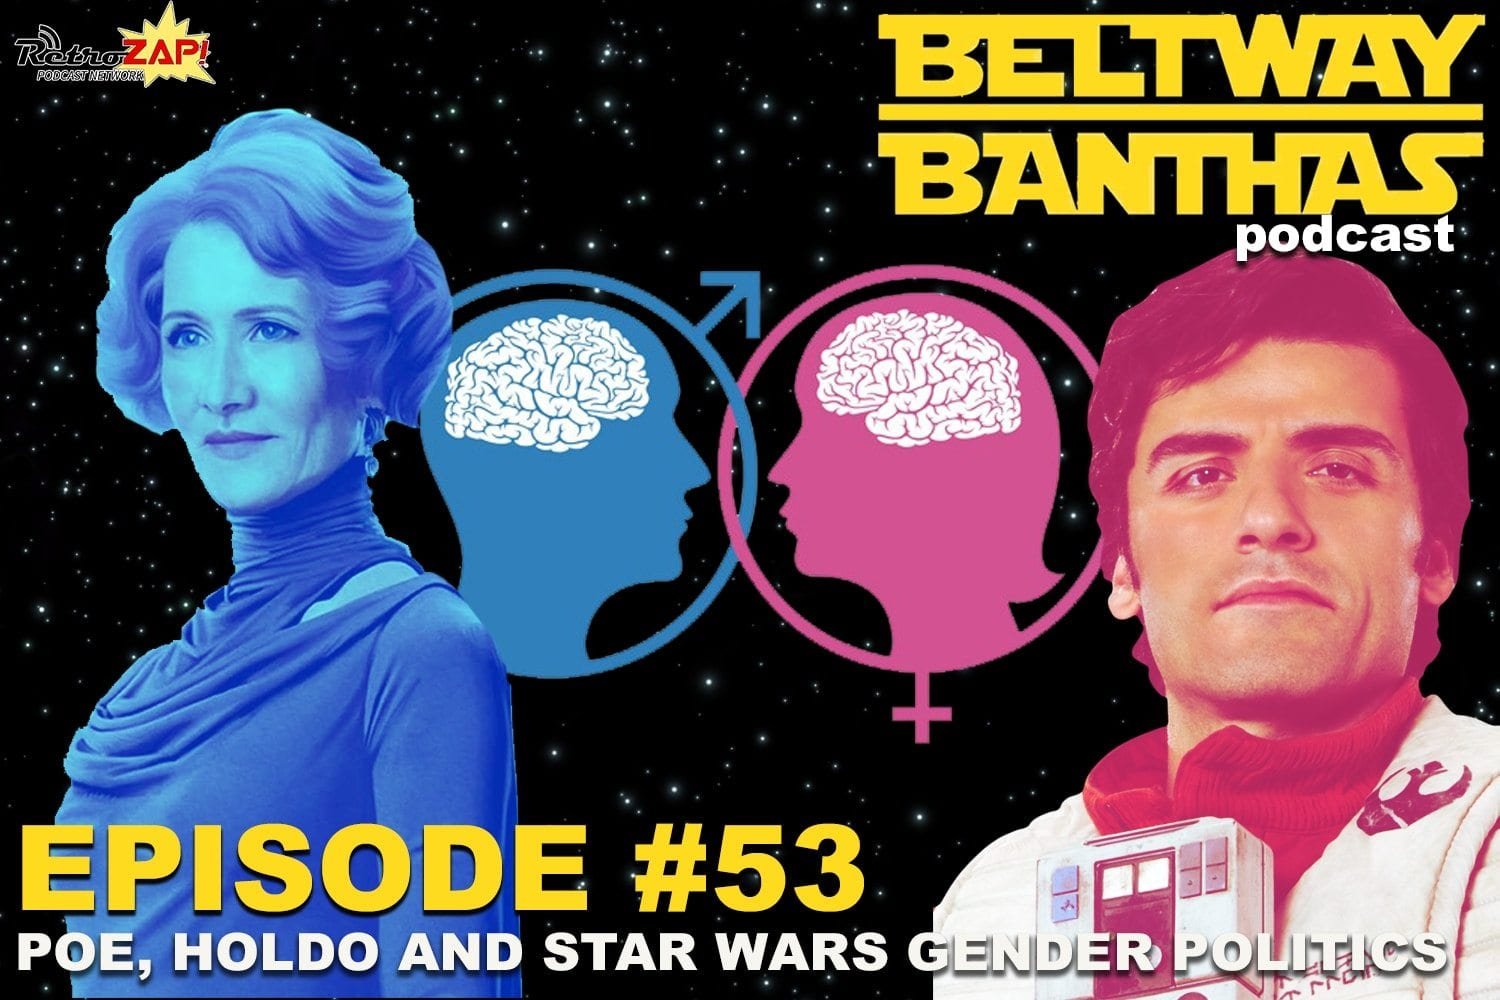 Beltway Banthas #53: Poe, Holdo, and Gender Politics of The Last Jedi